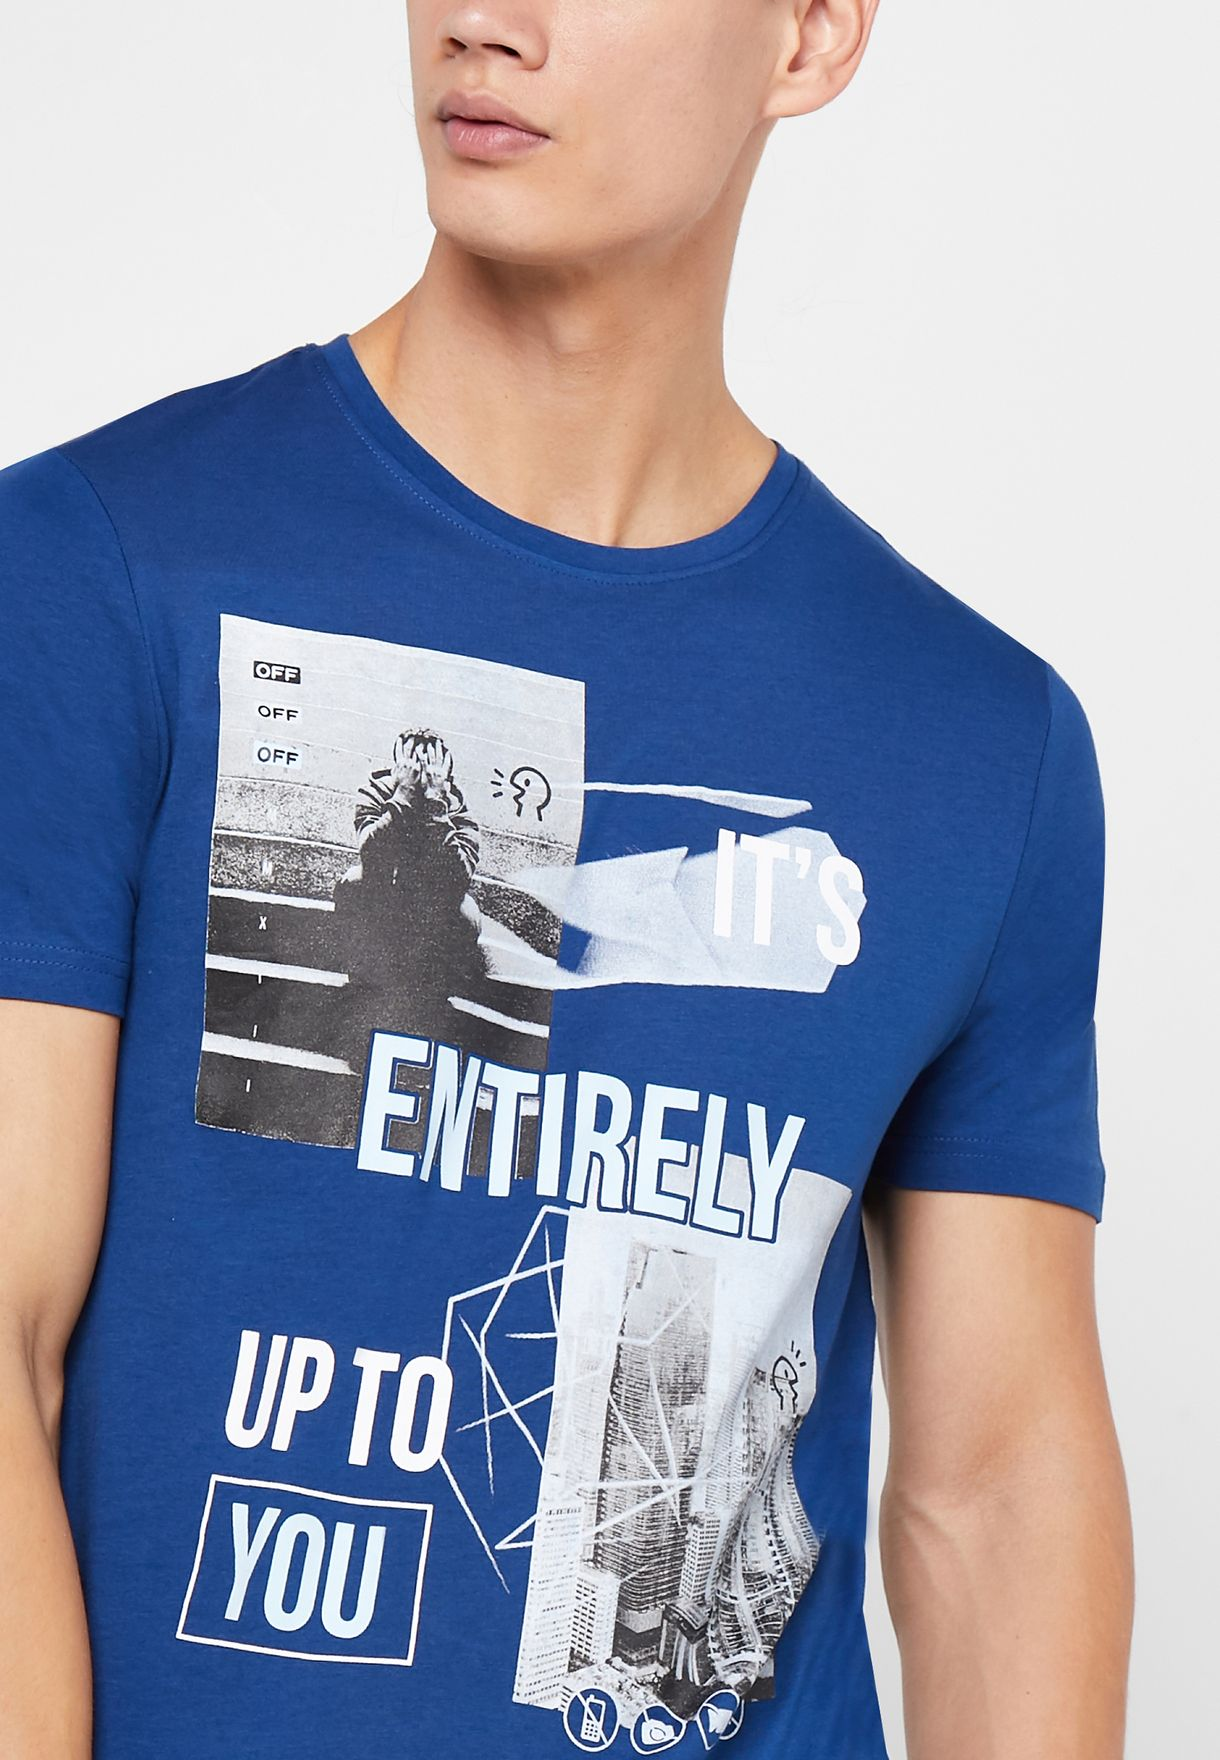 Entirely Up To You Crew Neck T-Shirt